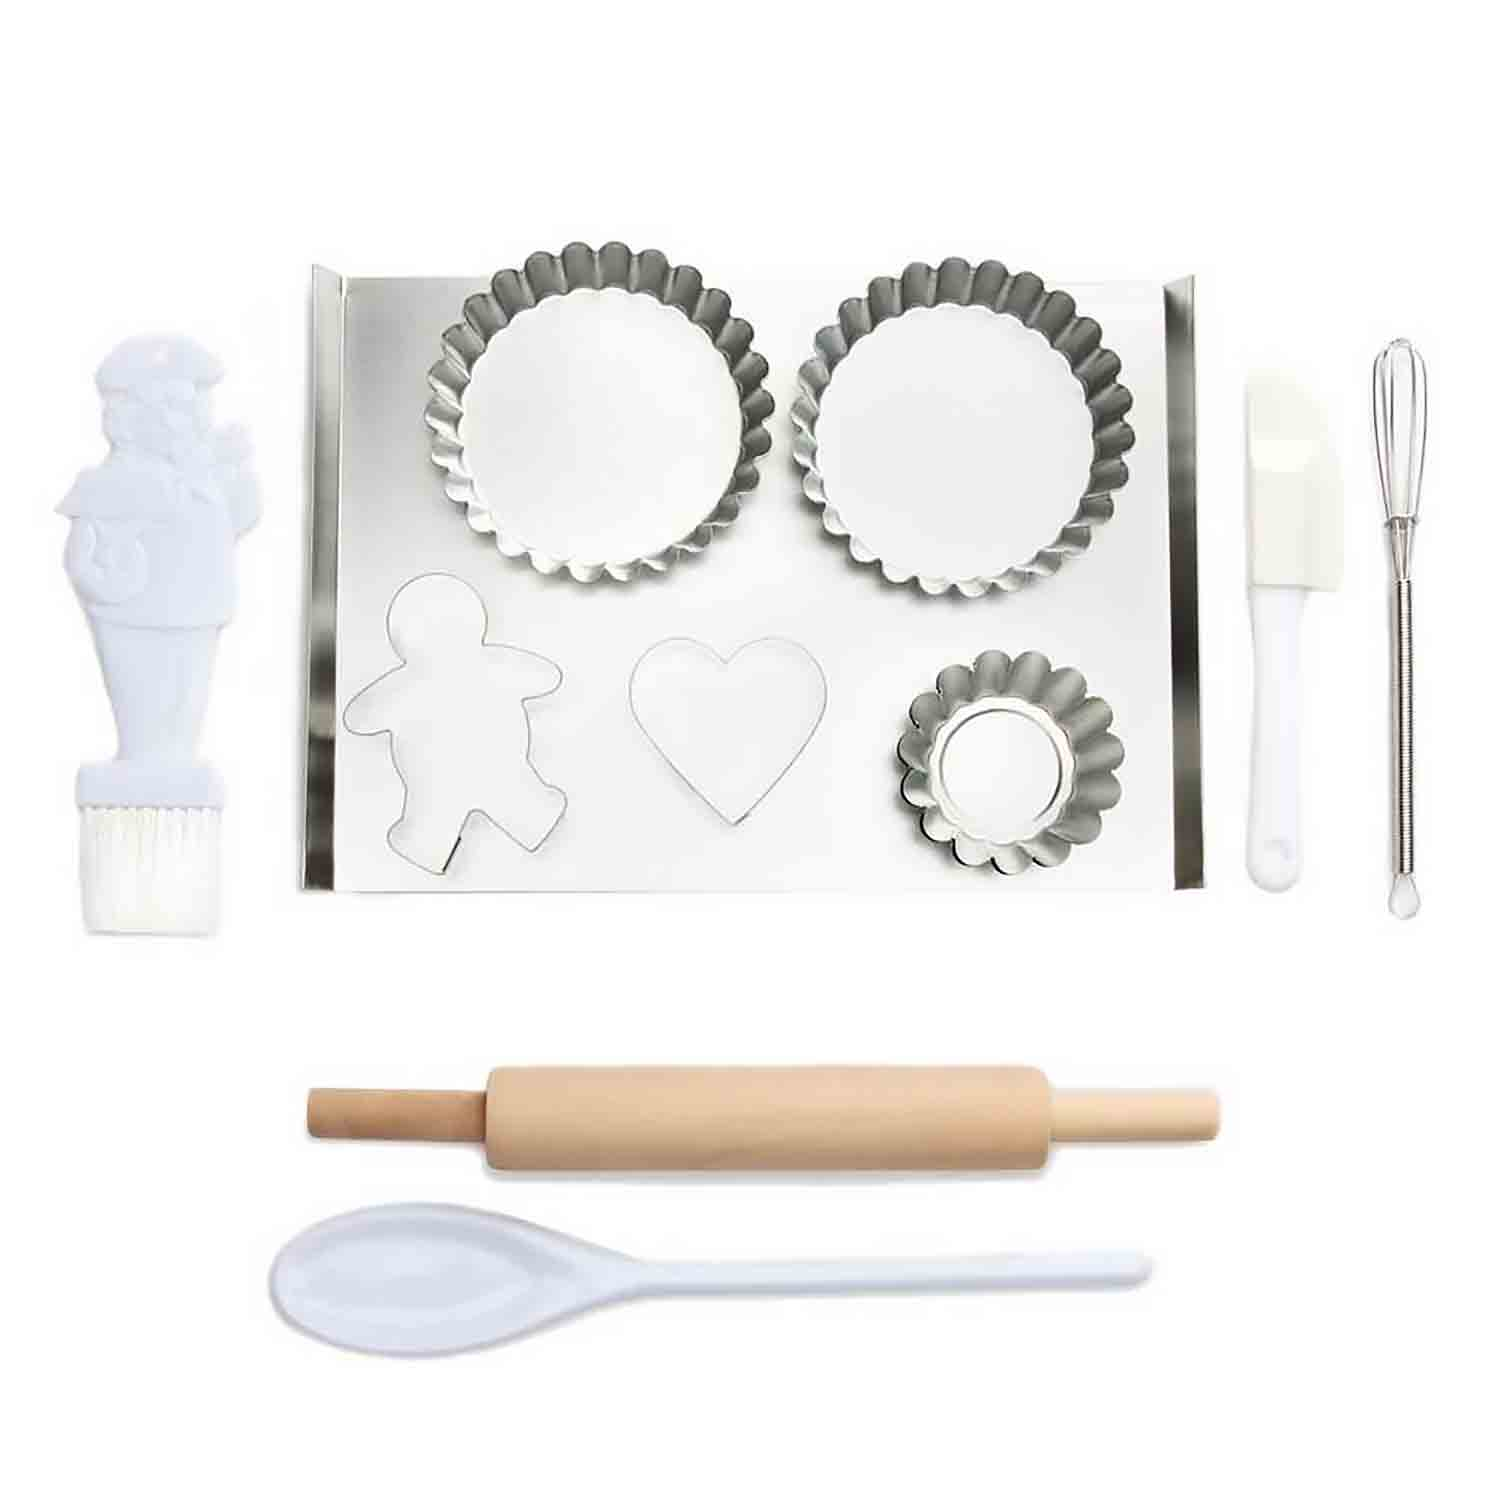 Junior Bake Set